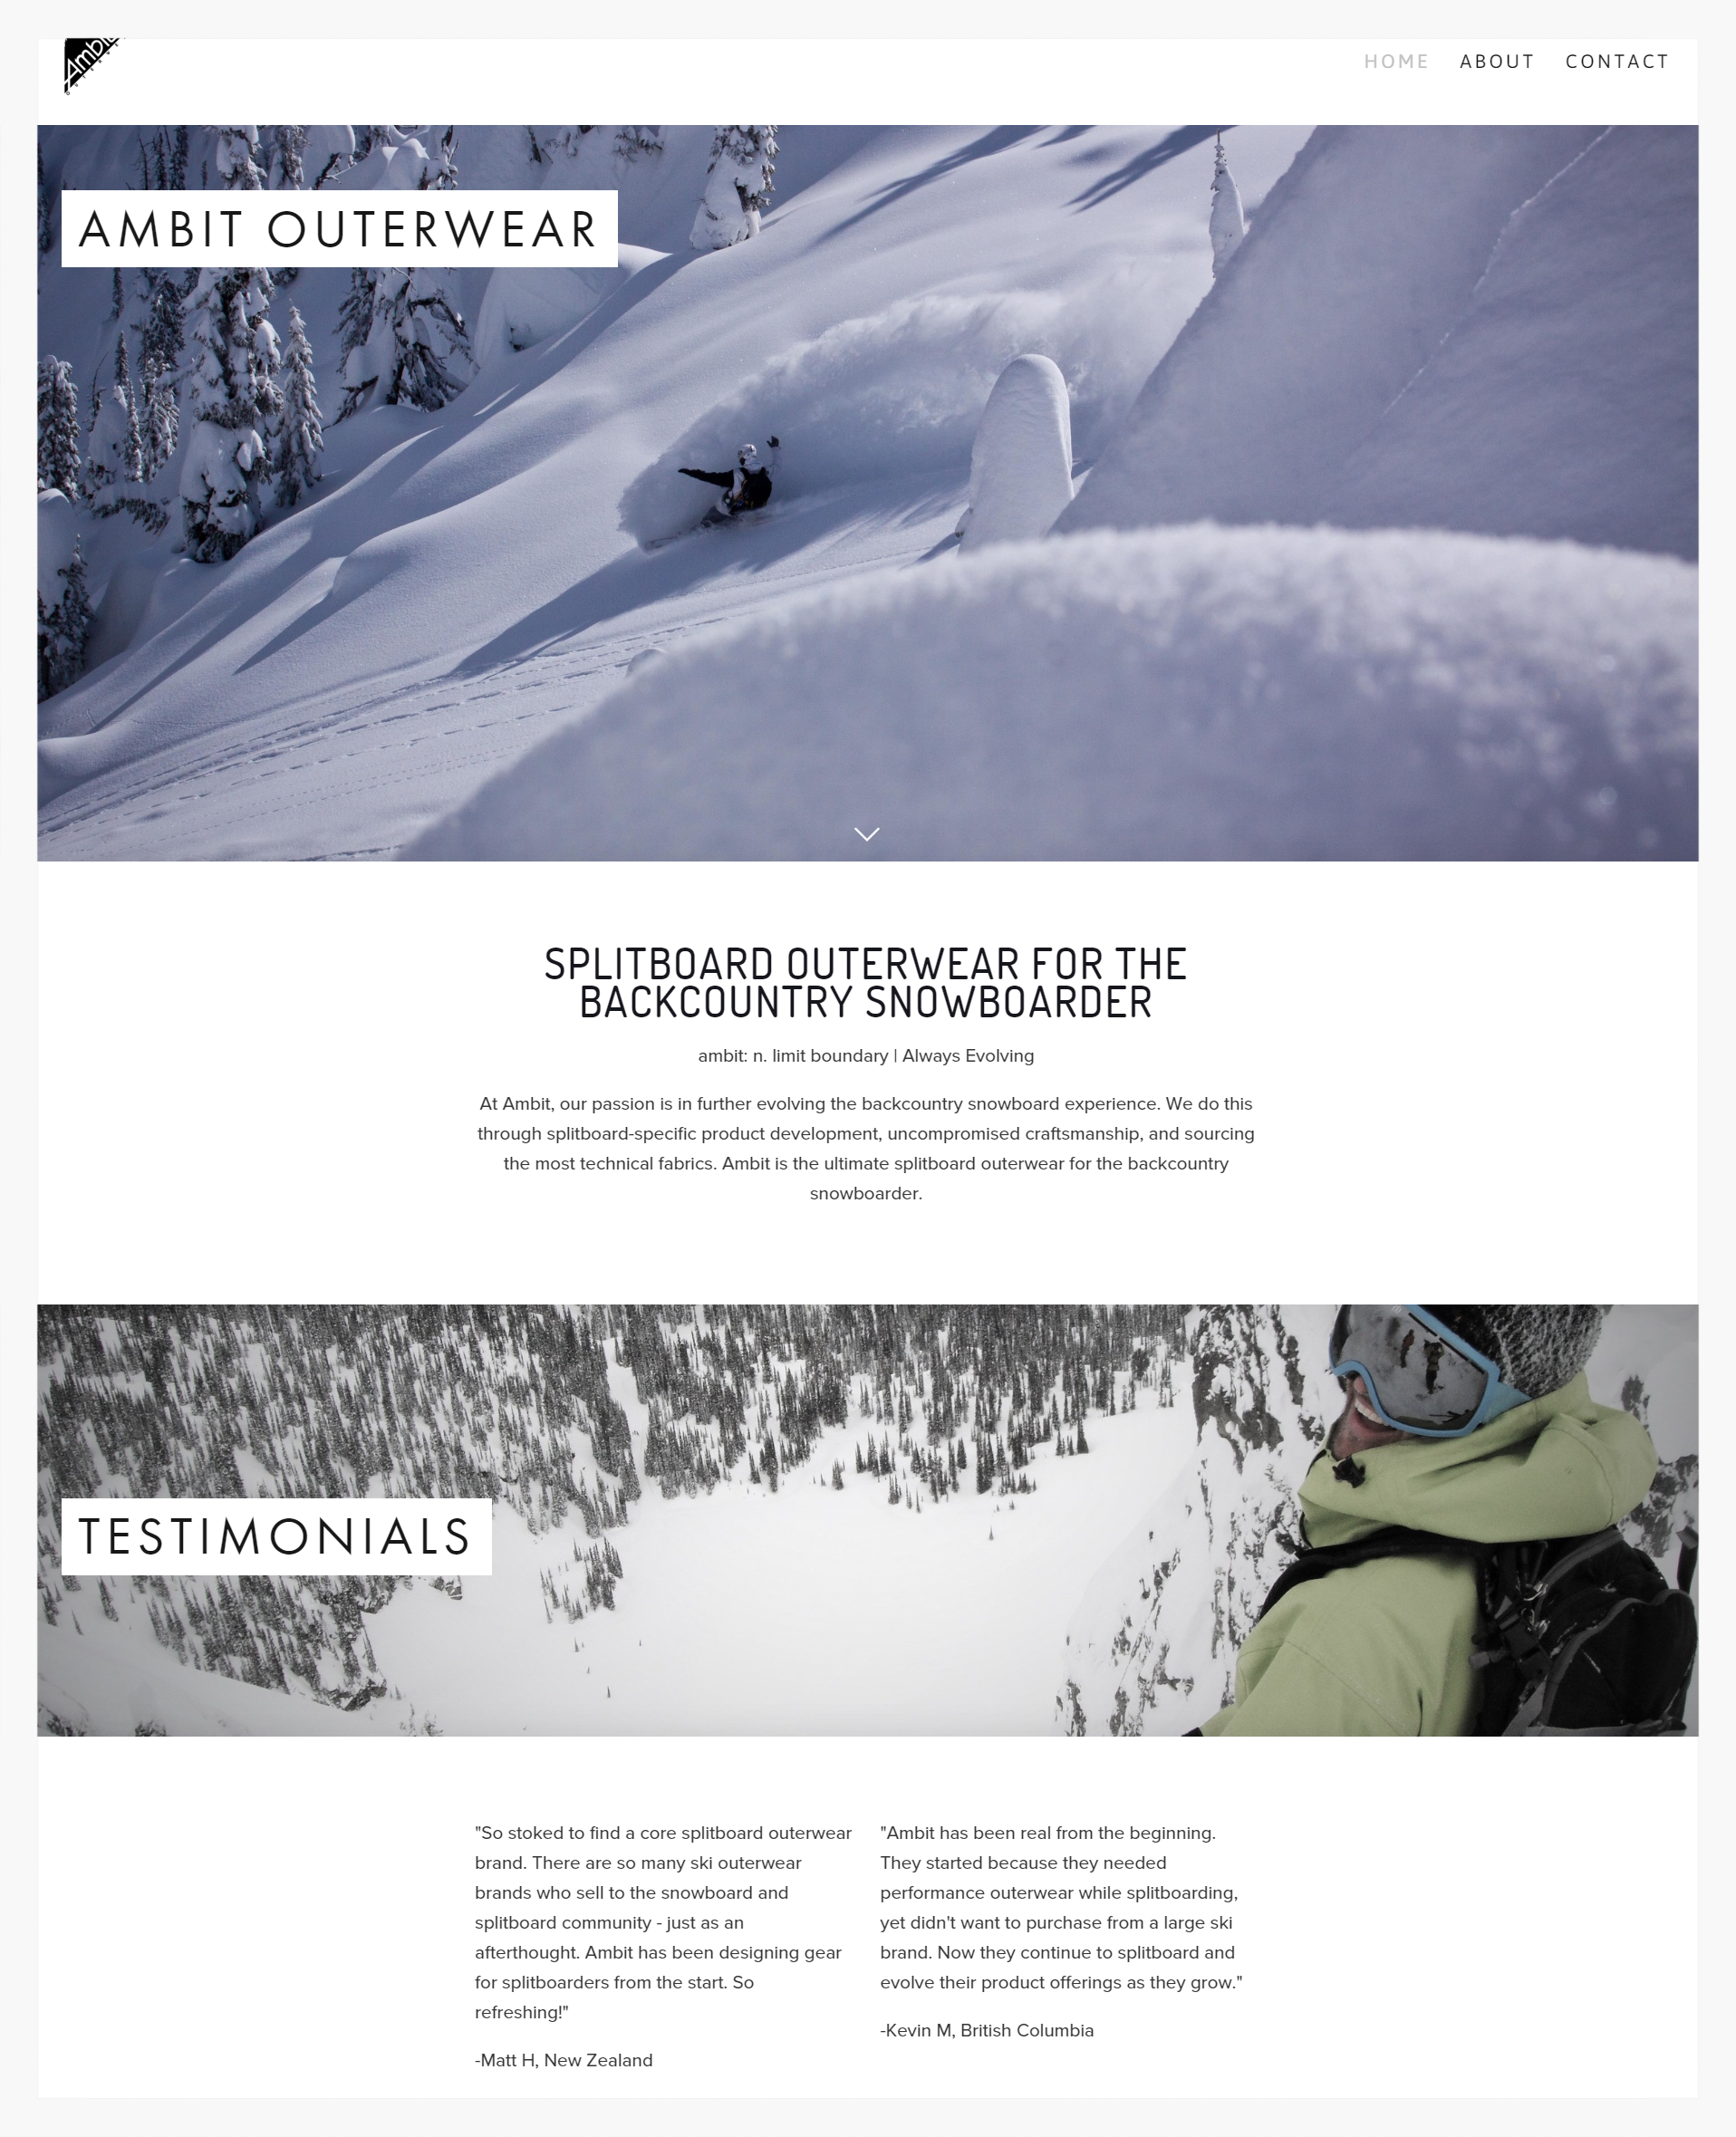 Ambit Outerwear Website Design